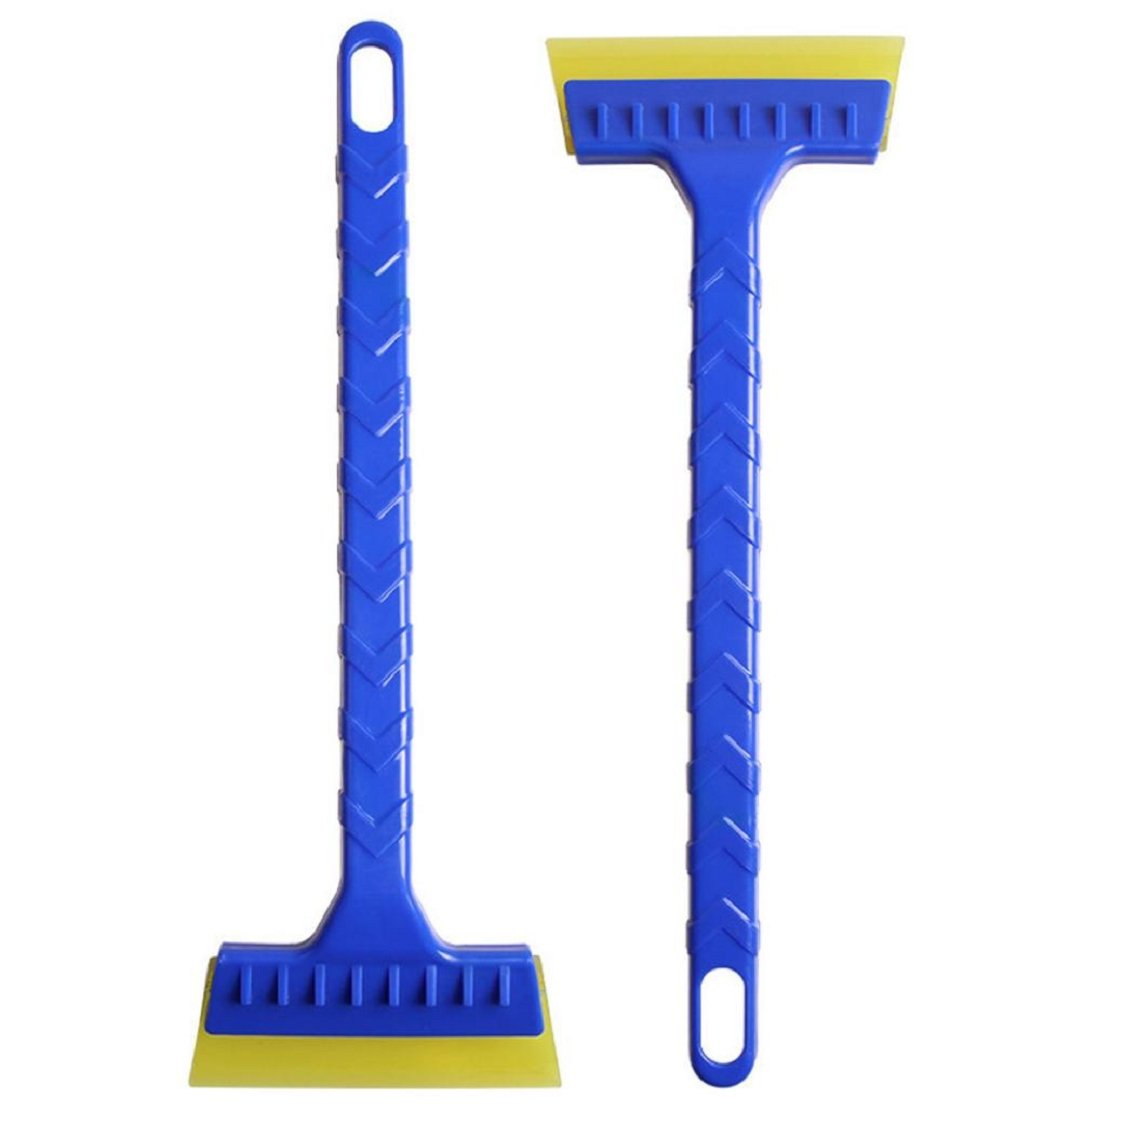 Sunfei Car Vehicle Durable Snow Ice Scraper Snow Brush Shovel Removal Cleaning Tool For Winter (Durable)